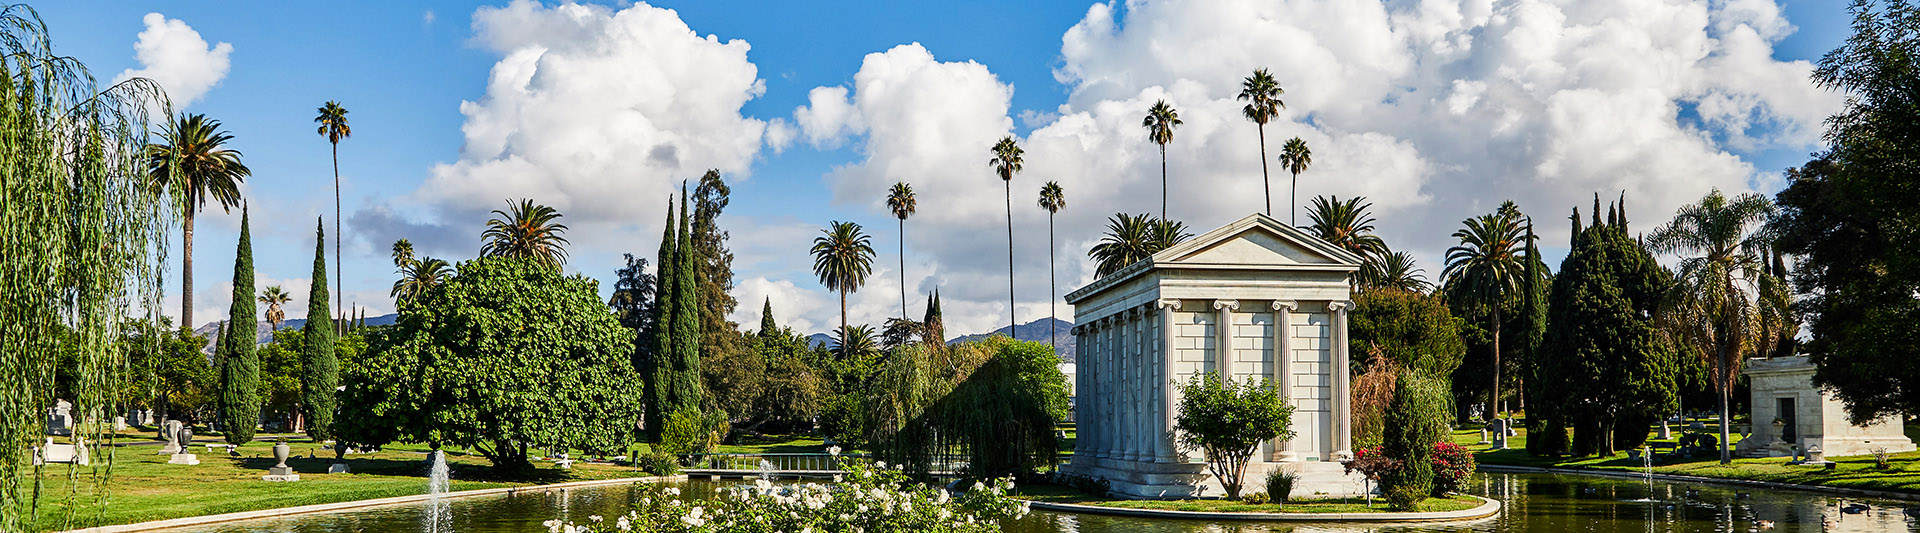 Hollywood Forever Cemetery, Cemetery